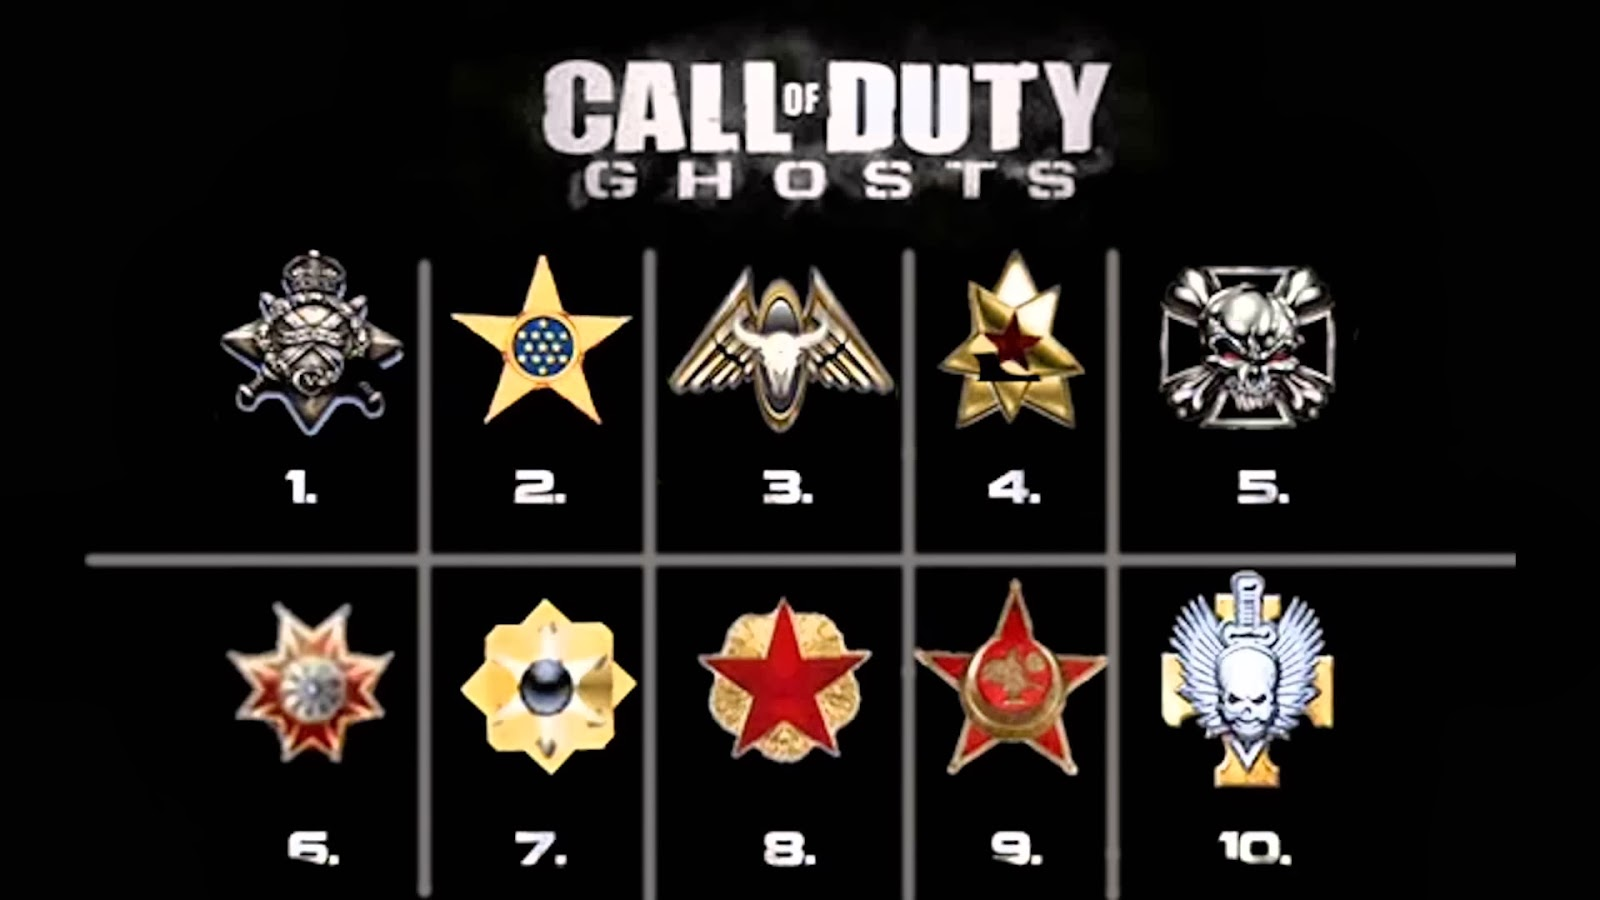 call of duty ghosts prestige hack for xbox 360 and ps3